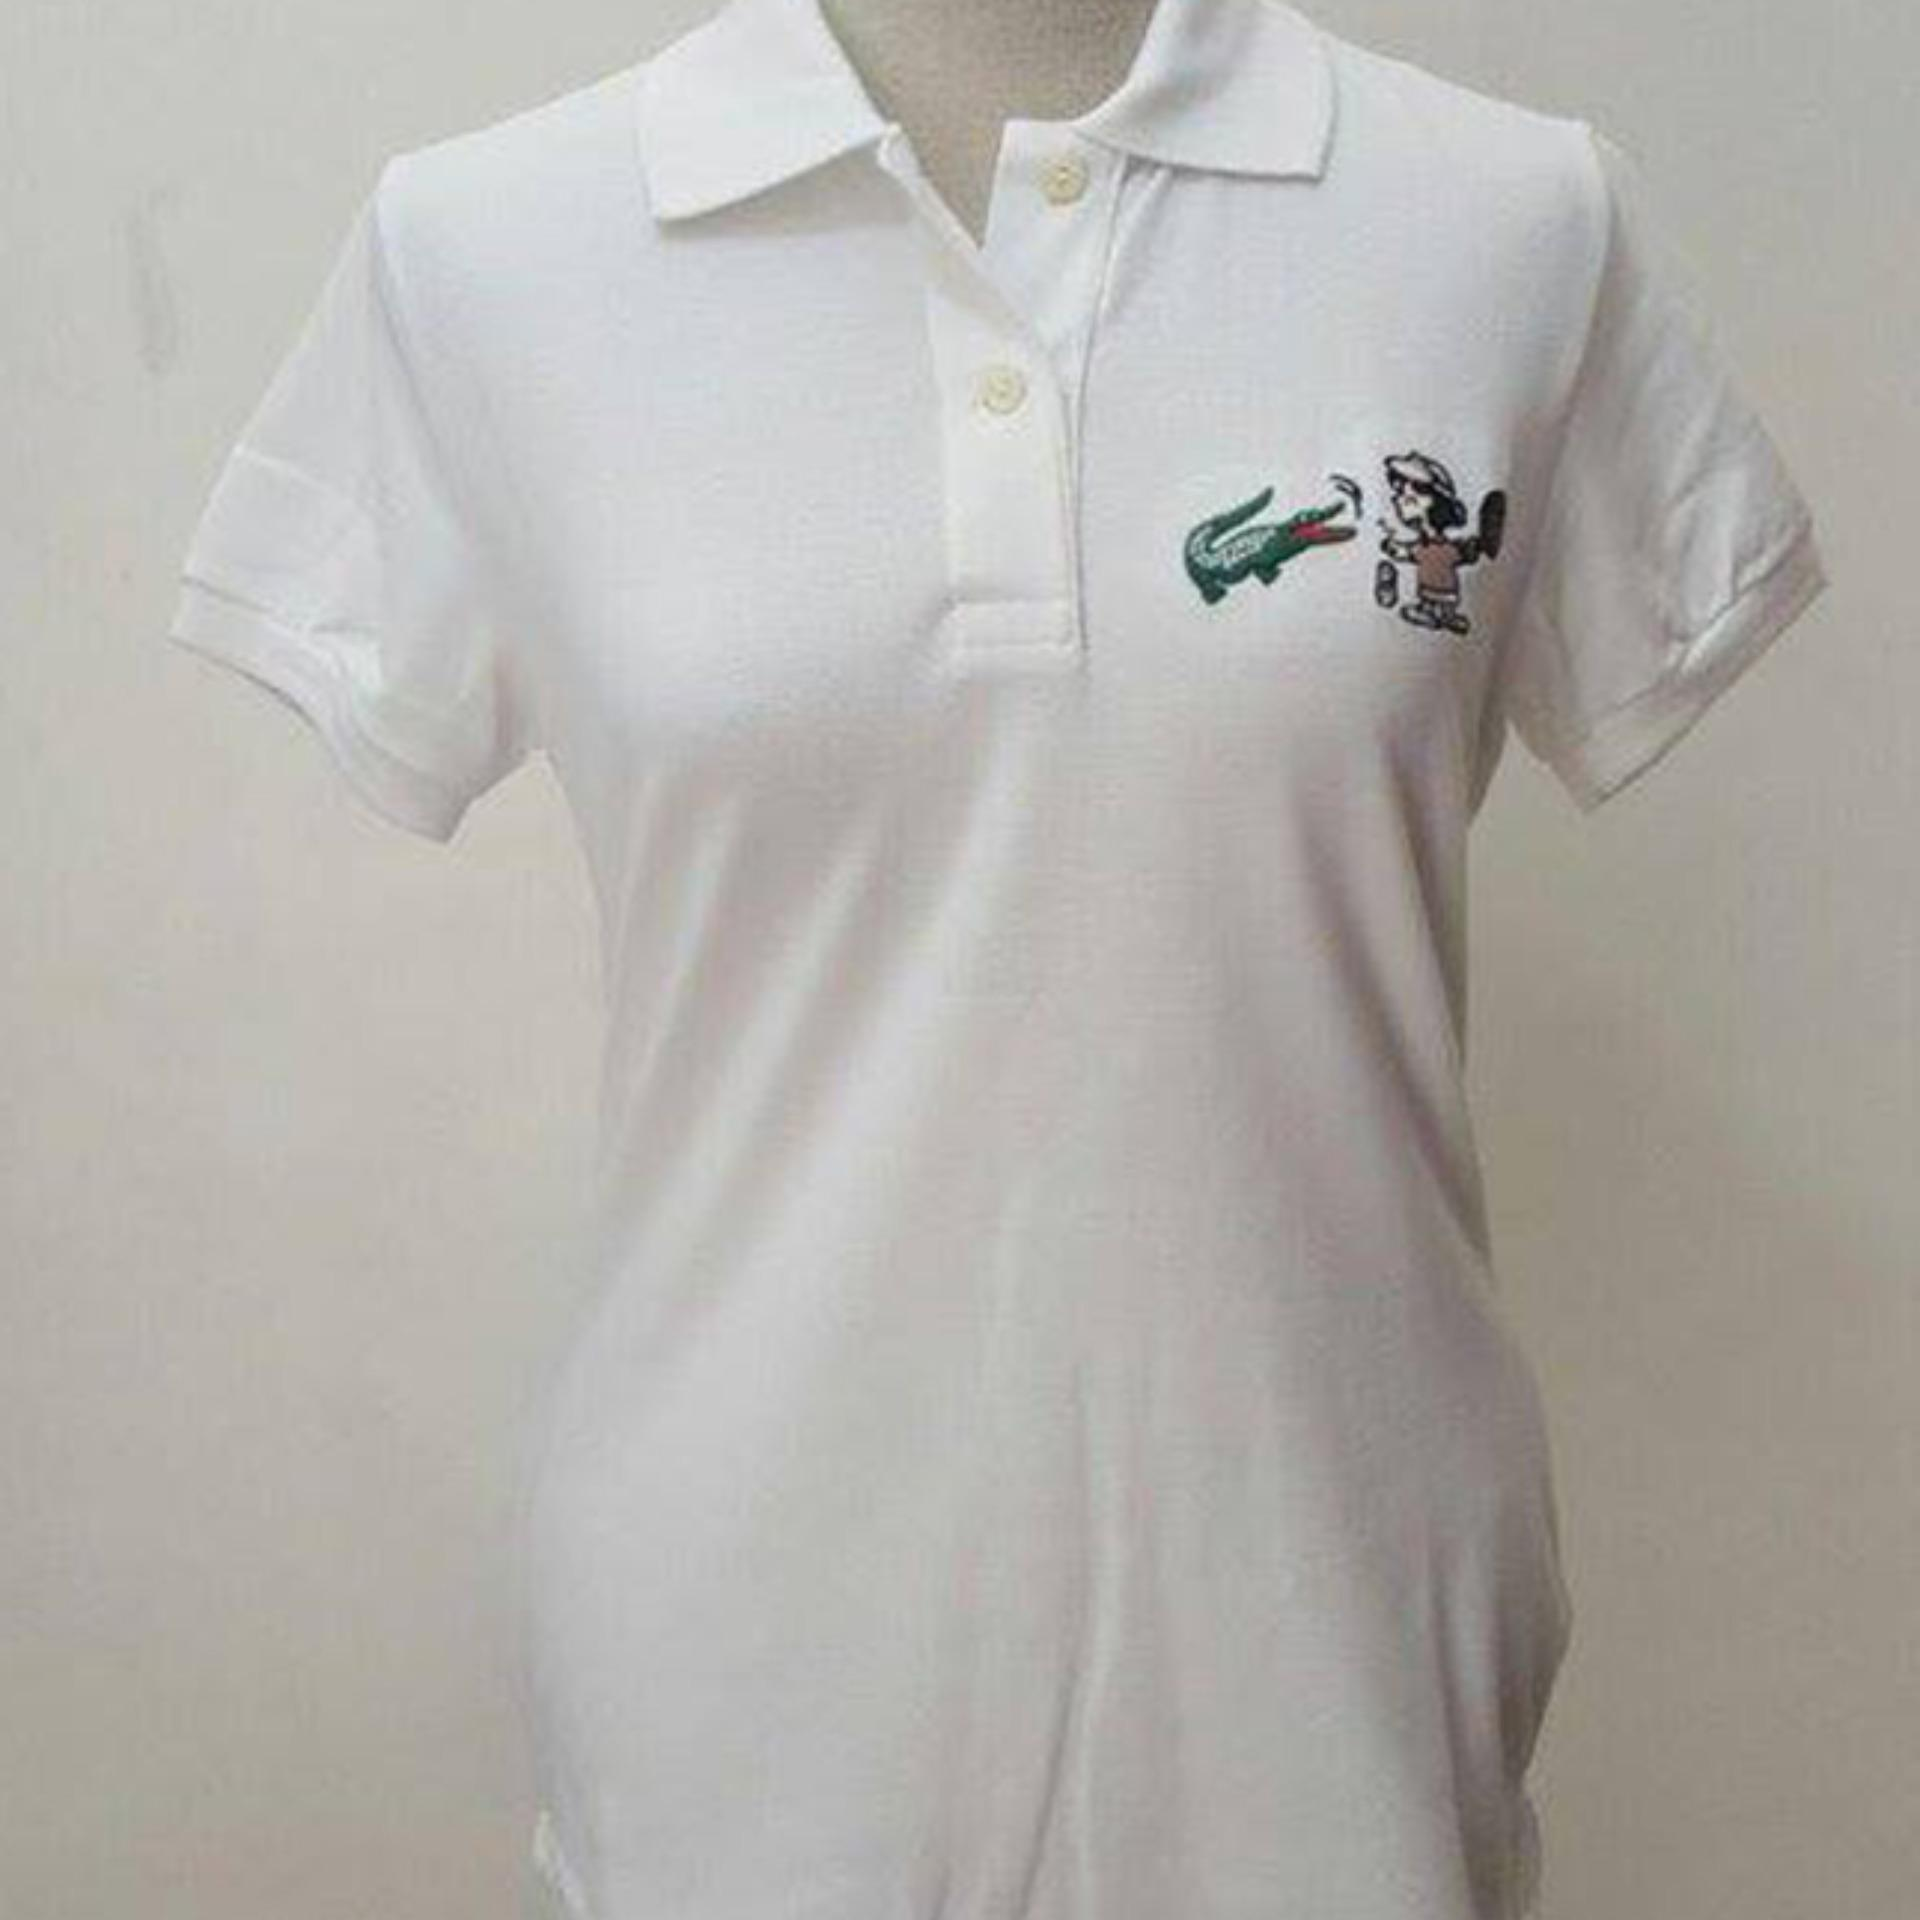 Lowest Price Lacoste Polo Shirt 85d13862ac